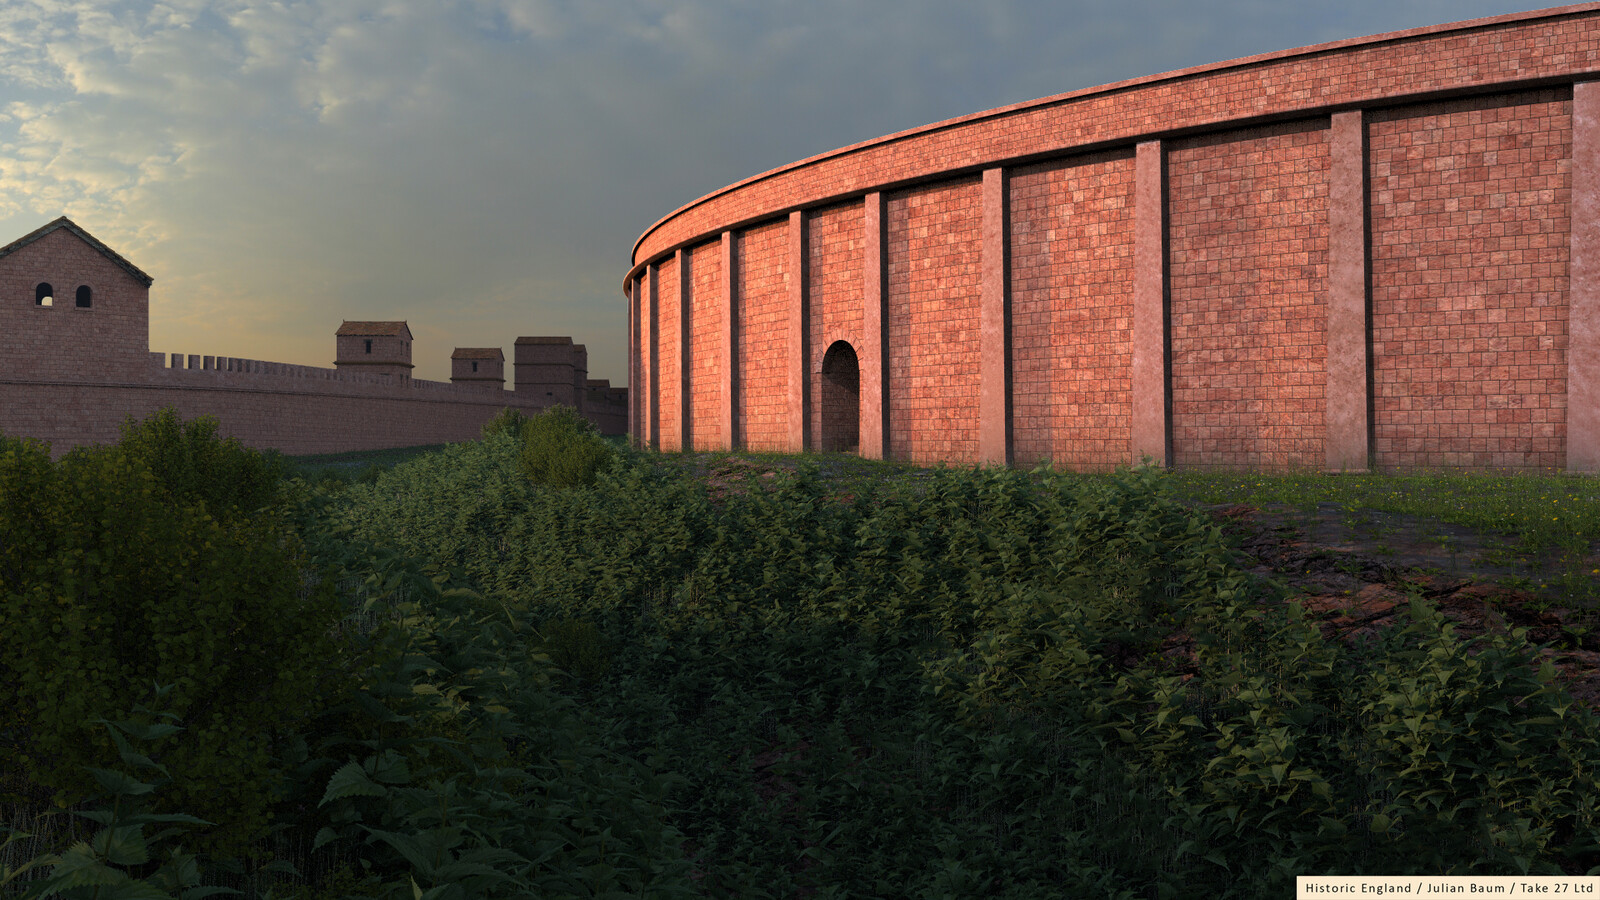 Chester's Roman ampitheatre, with the evening setting sun highlighting the western entrance.